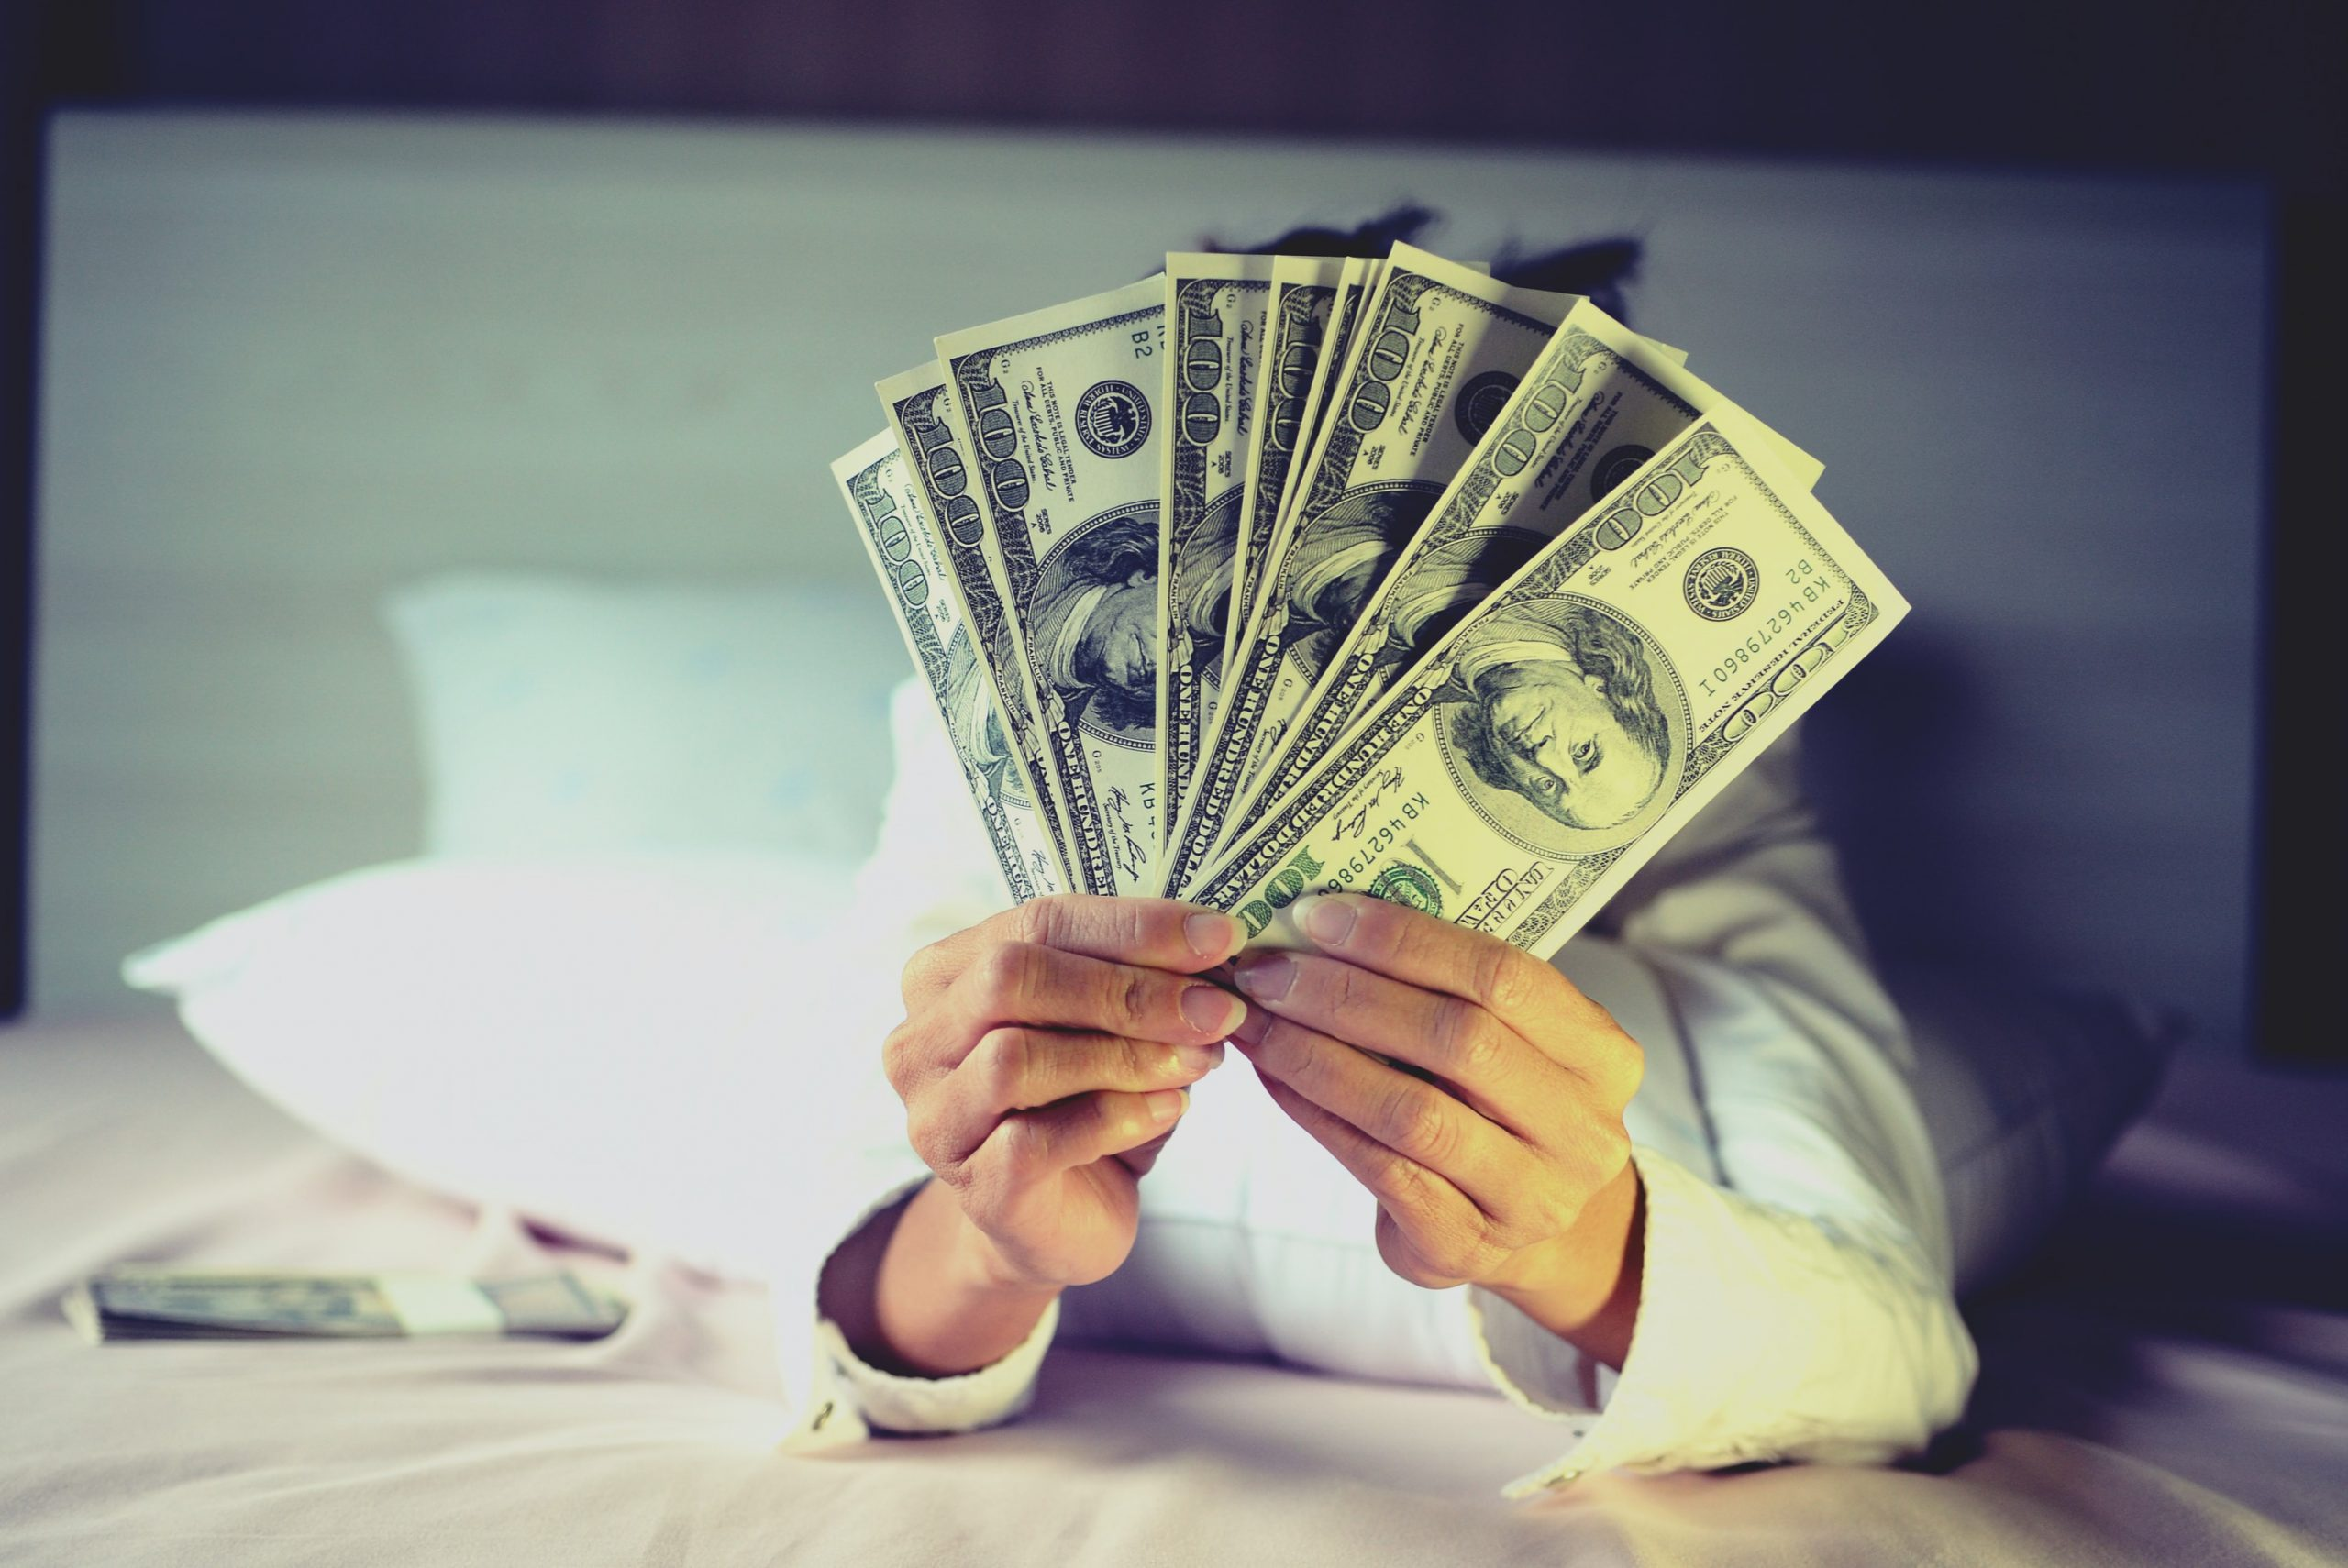 10 Ways to Make Money in College that You Did Not Think About